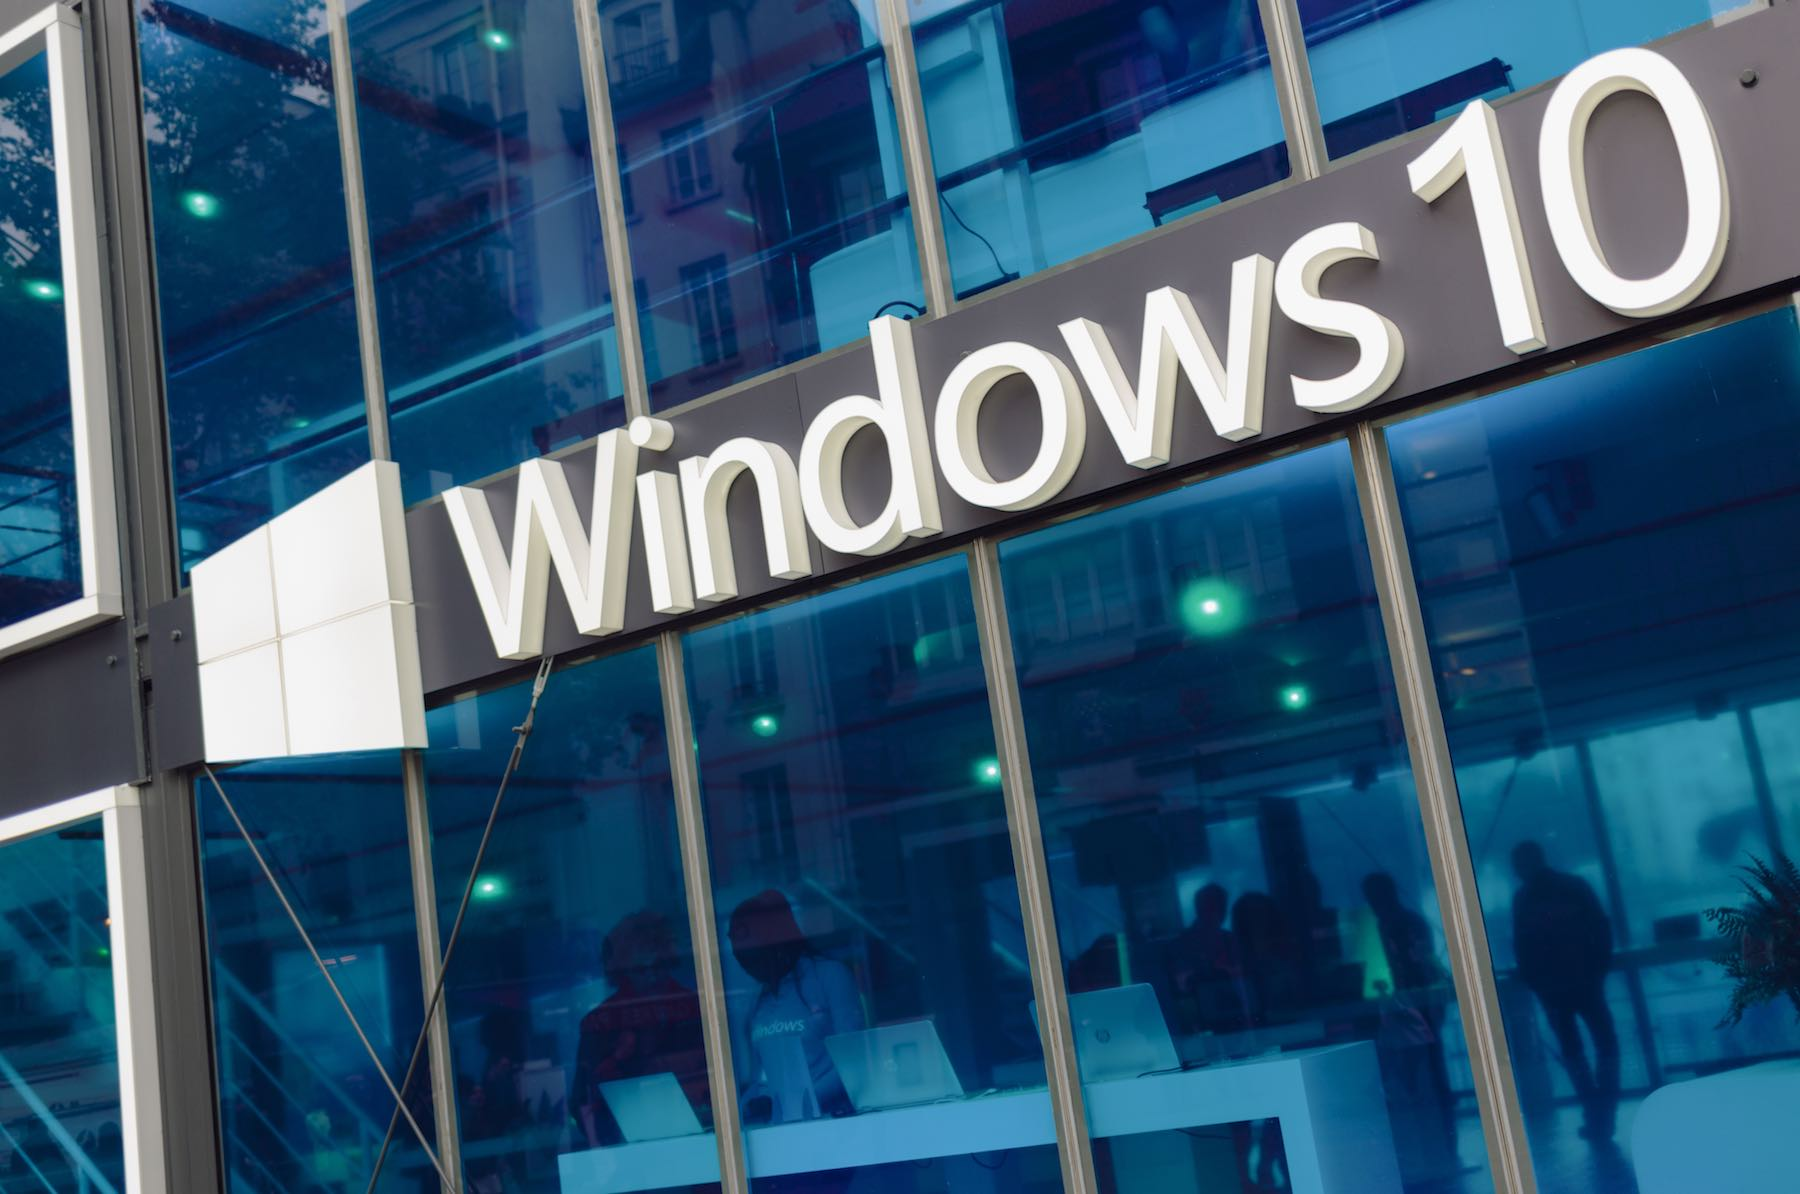 Facade of pavilion promoting Windows 10.